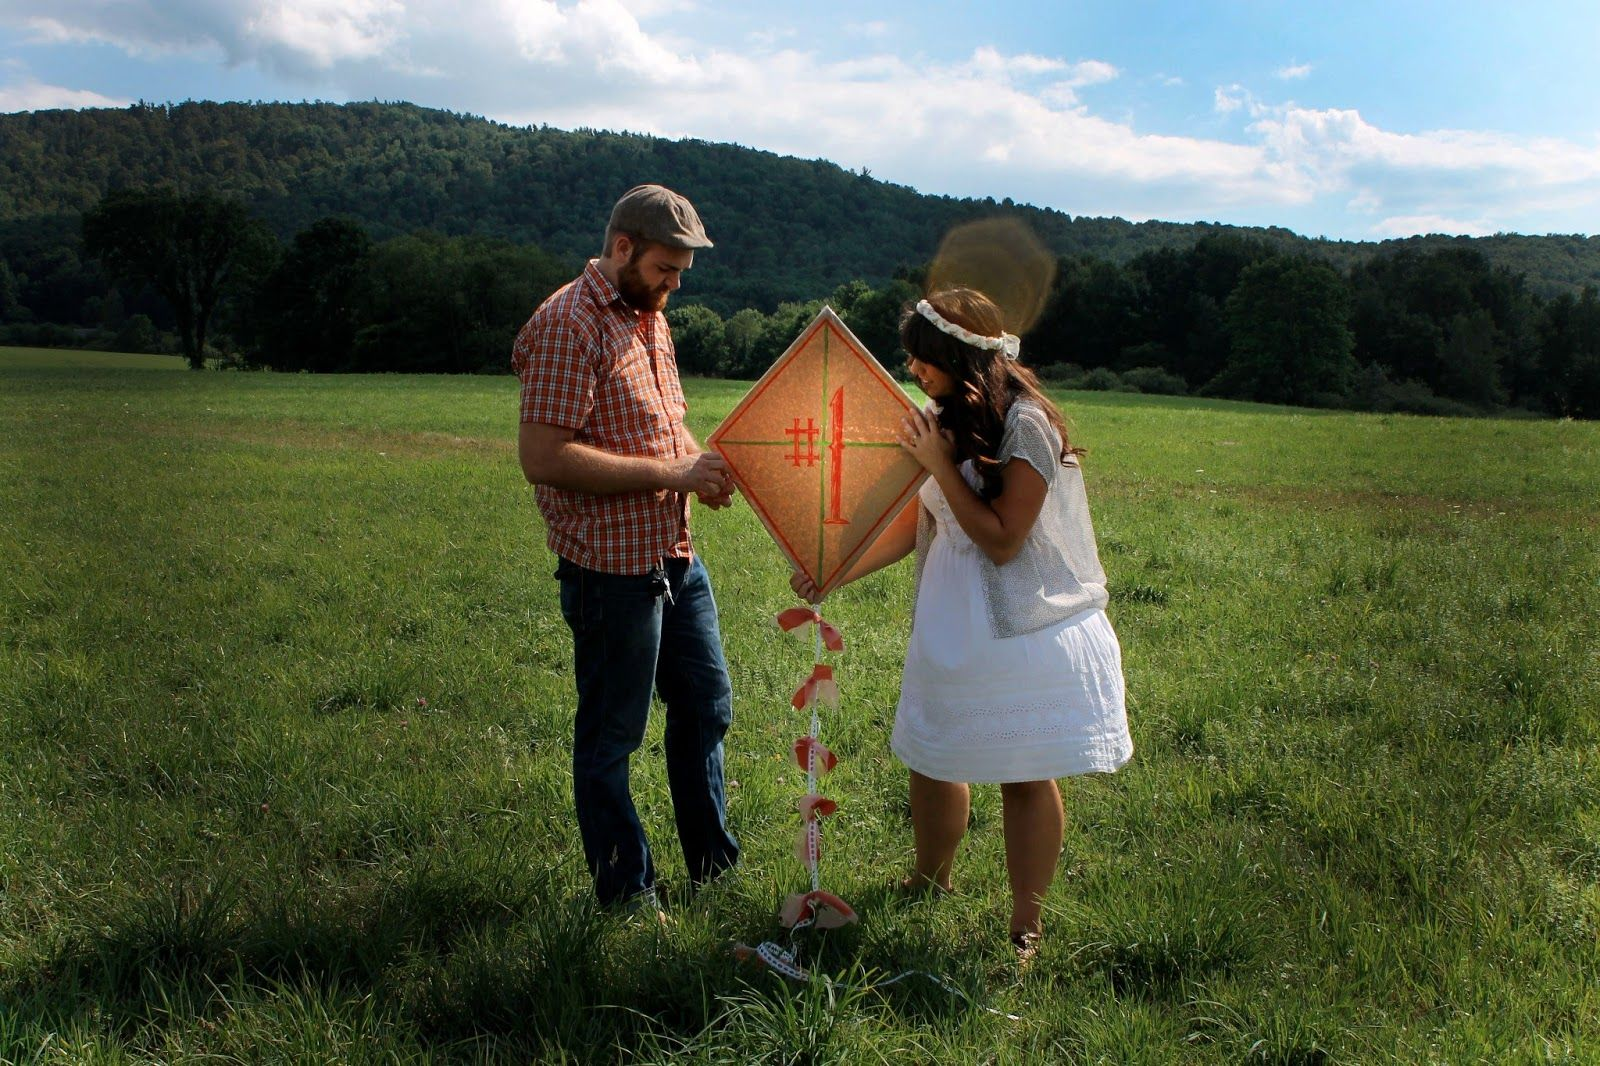 1st Year Anniversary Shoot! Do something together that involves paper which is the traditional gift for 1 year anniversary.. We made a paper kite and tried flying it together! Be Still, Life Blog: Photo Cred to @Lee Pfeil